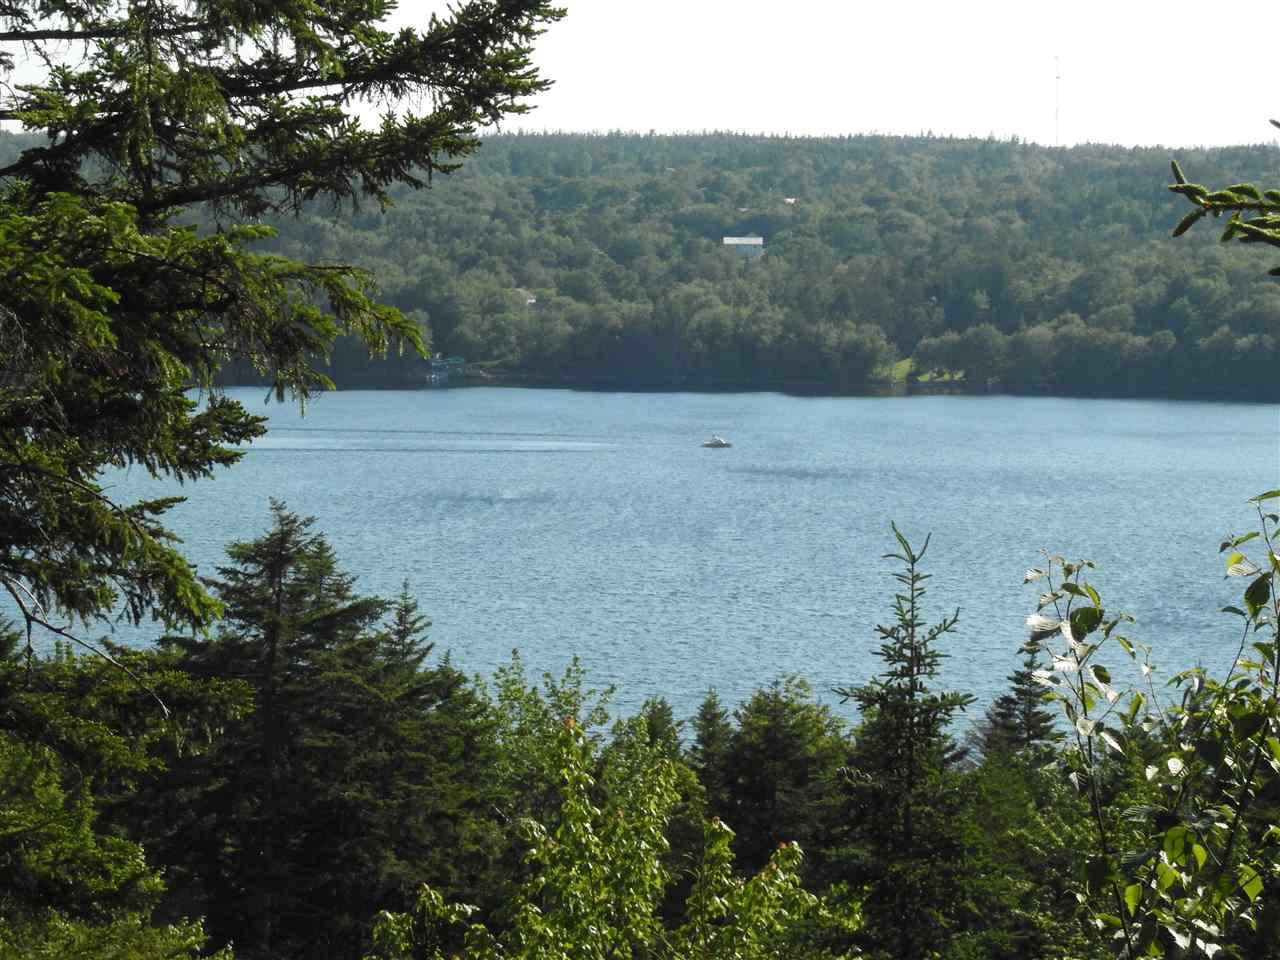 Main Photo: Lot 1 Alps Road in Porters Lake: 31-Lawrencetown, Lake Echo, Porters Lake Vacant Land for sale (Halifax-Dartmouth)  : MLS®# 202025746